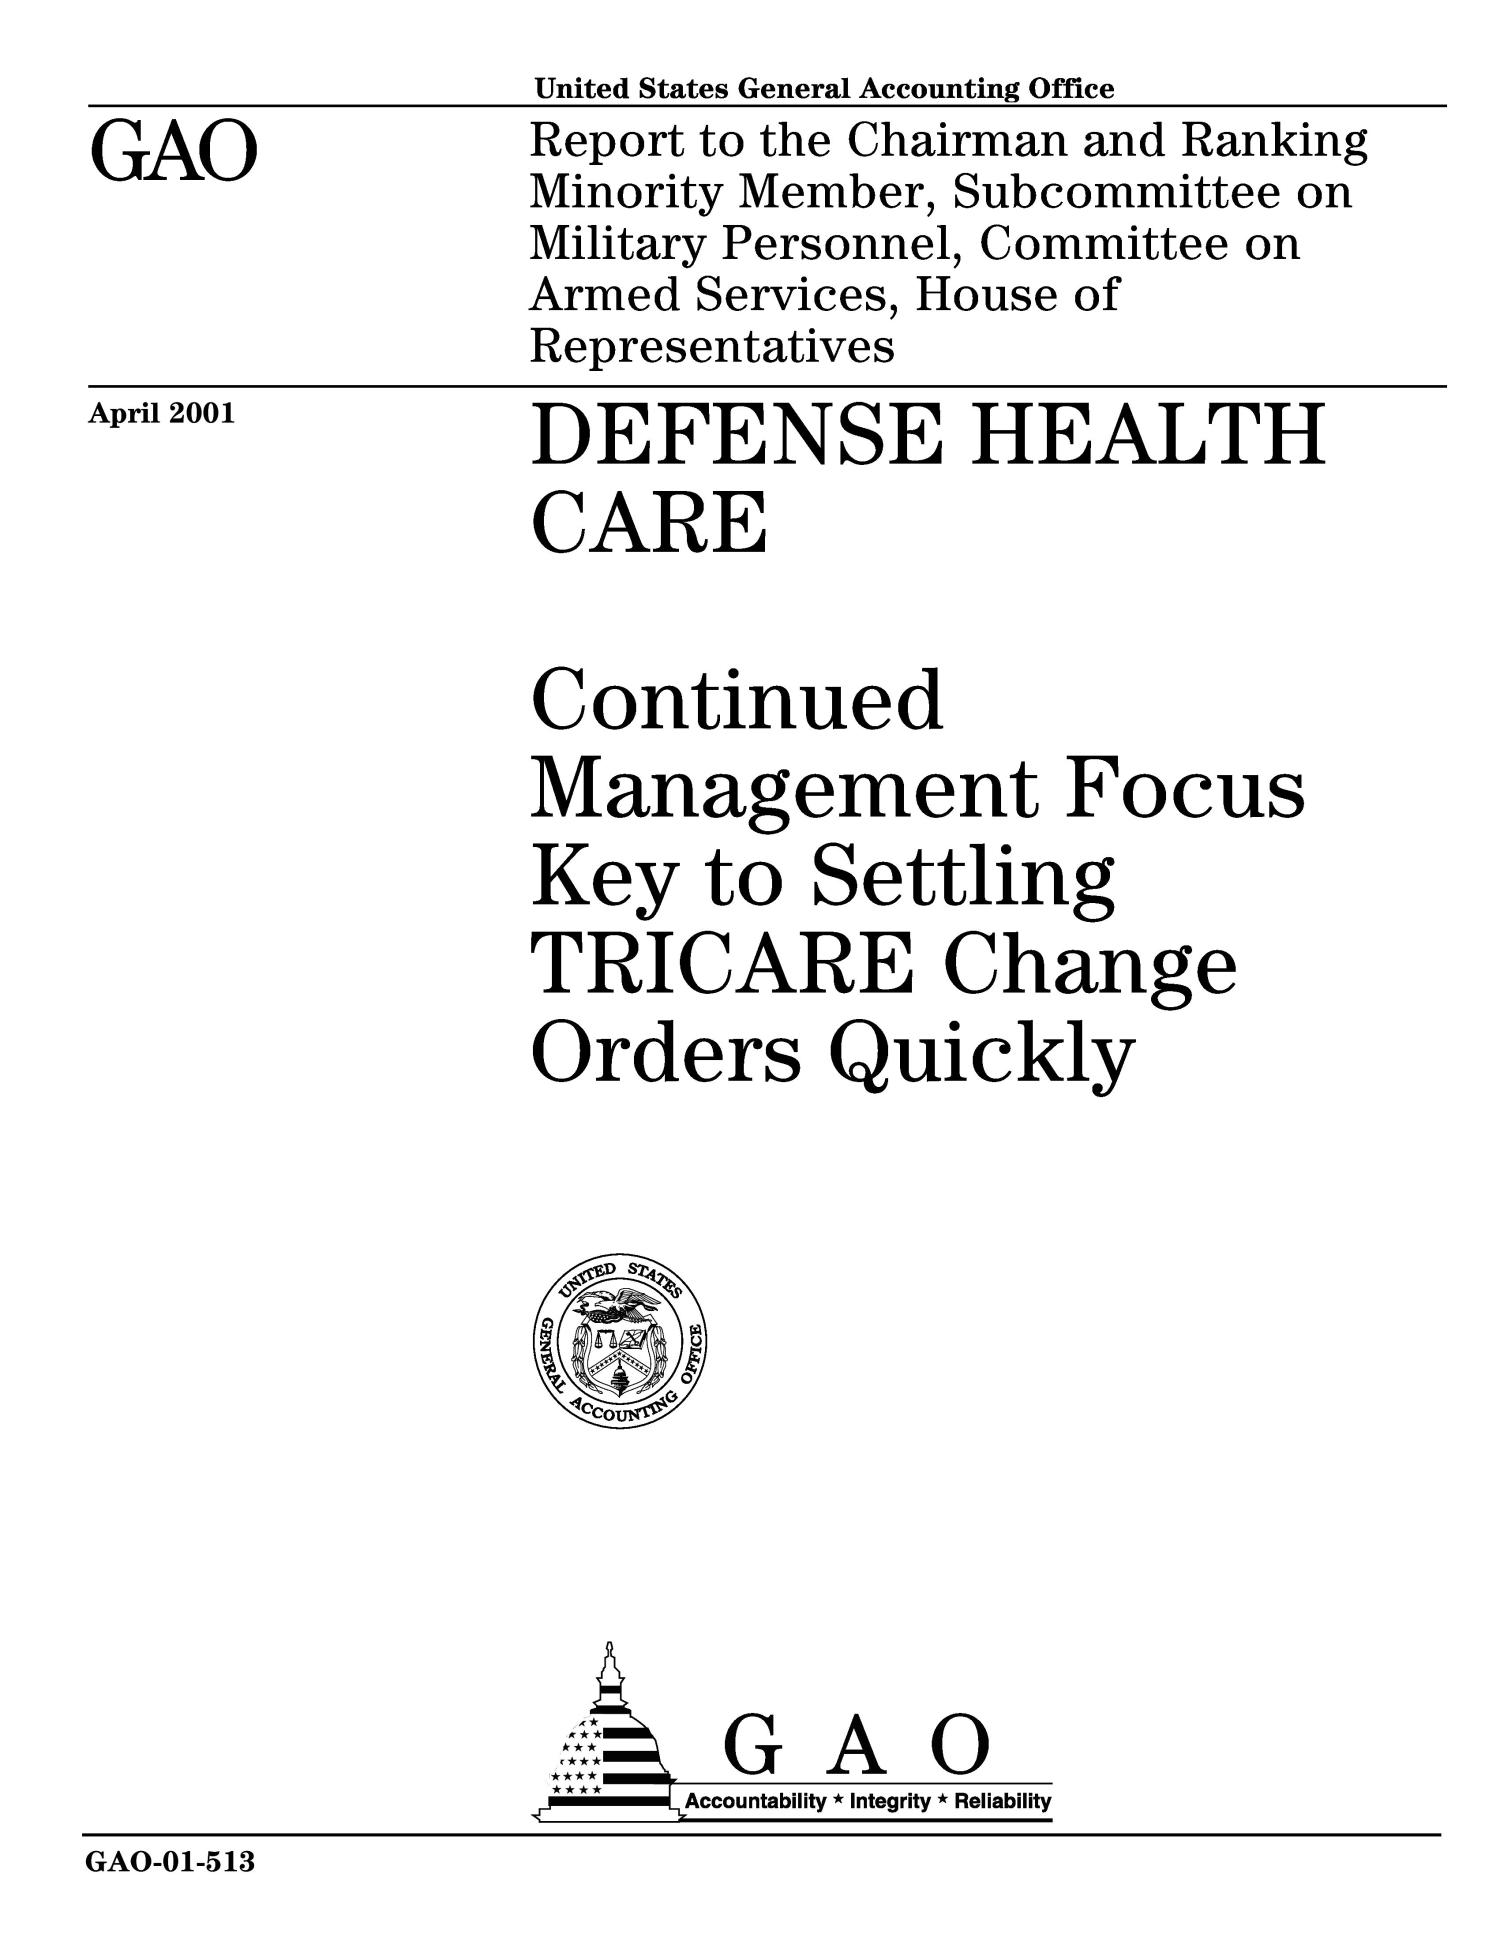 Defense Health Care: Continued Management Focus Key to Settling TRICARE Change Orders Quickly                                                                                                      [Sequence #]: 1 of 32